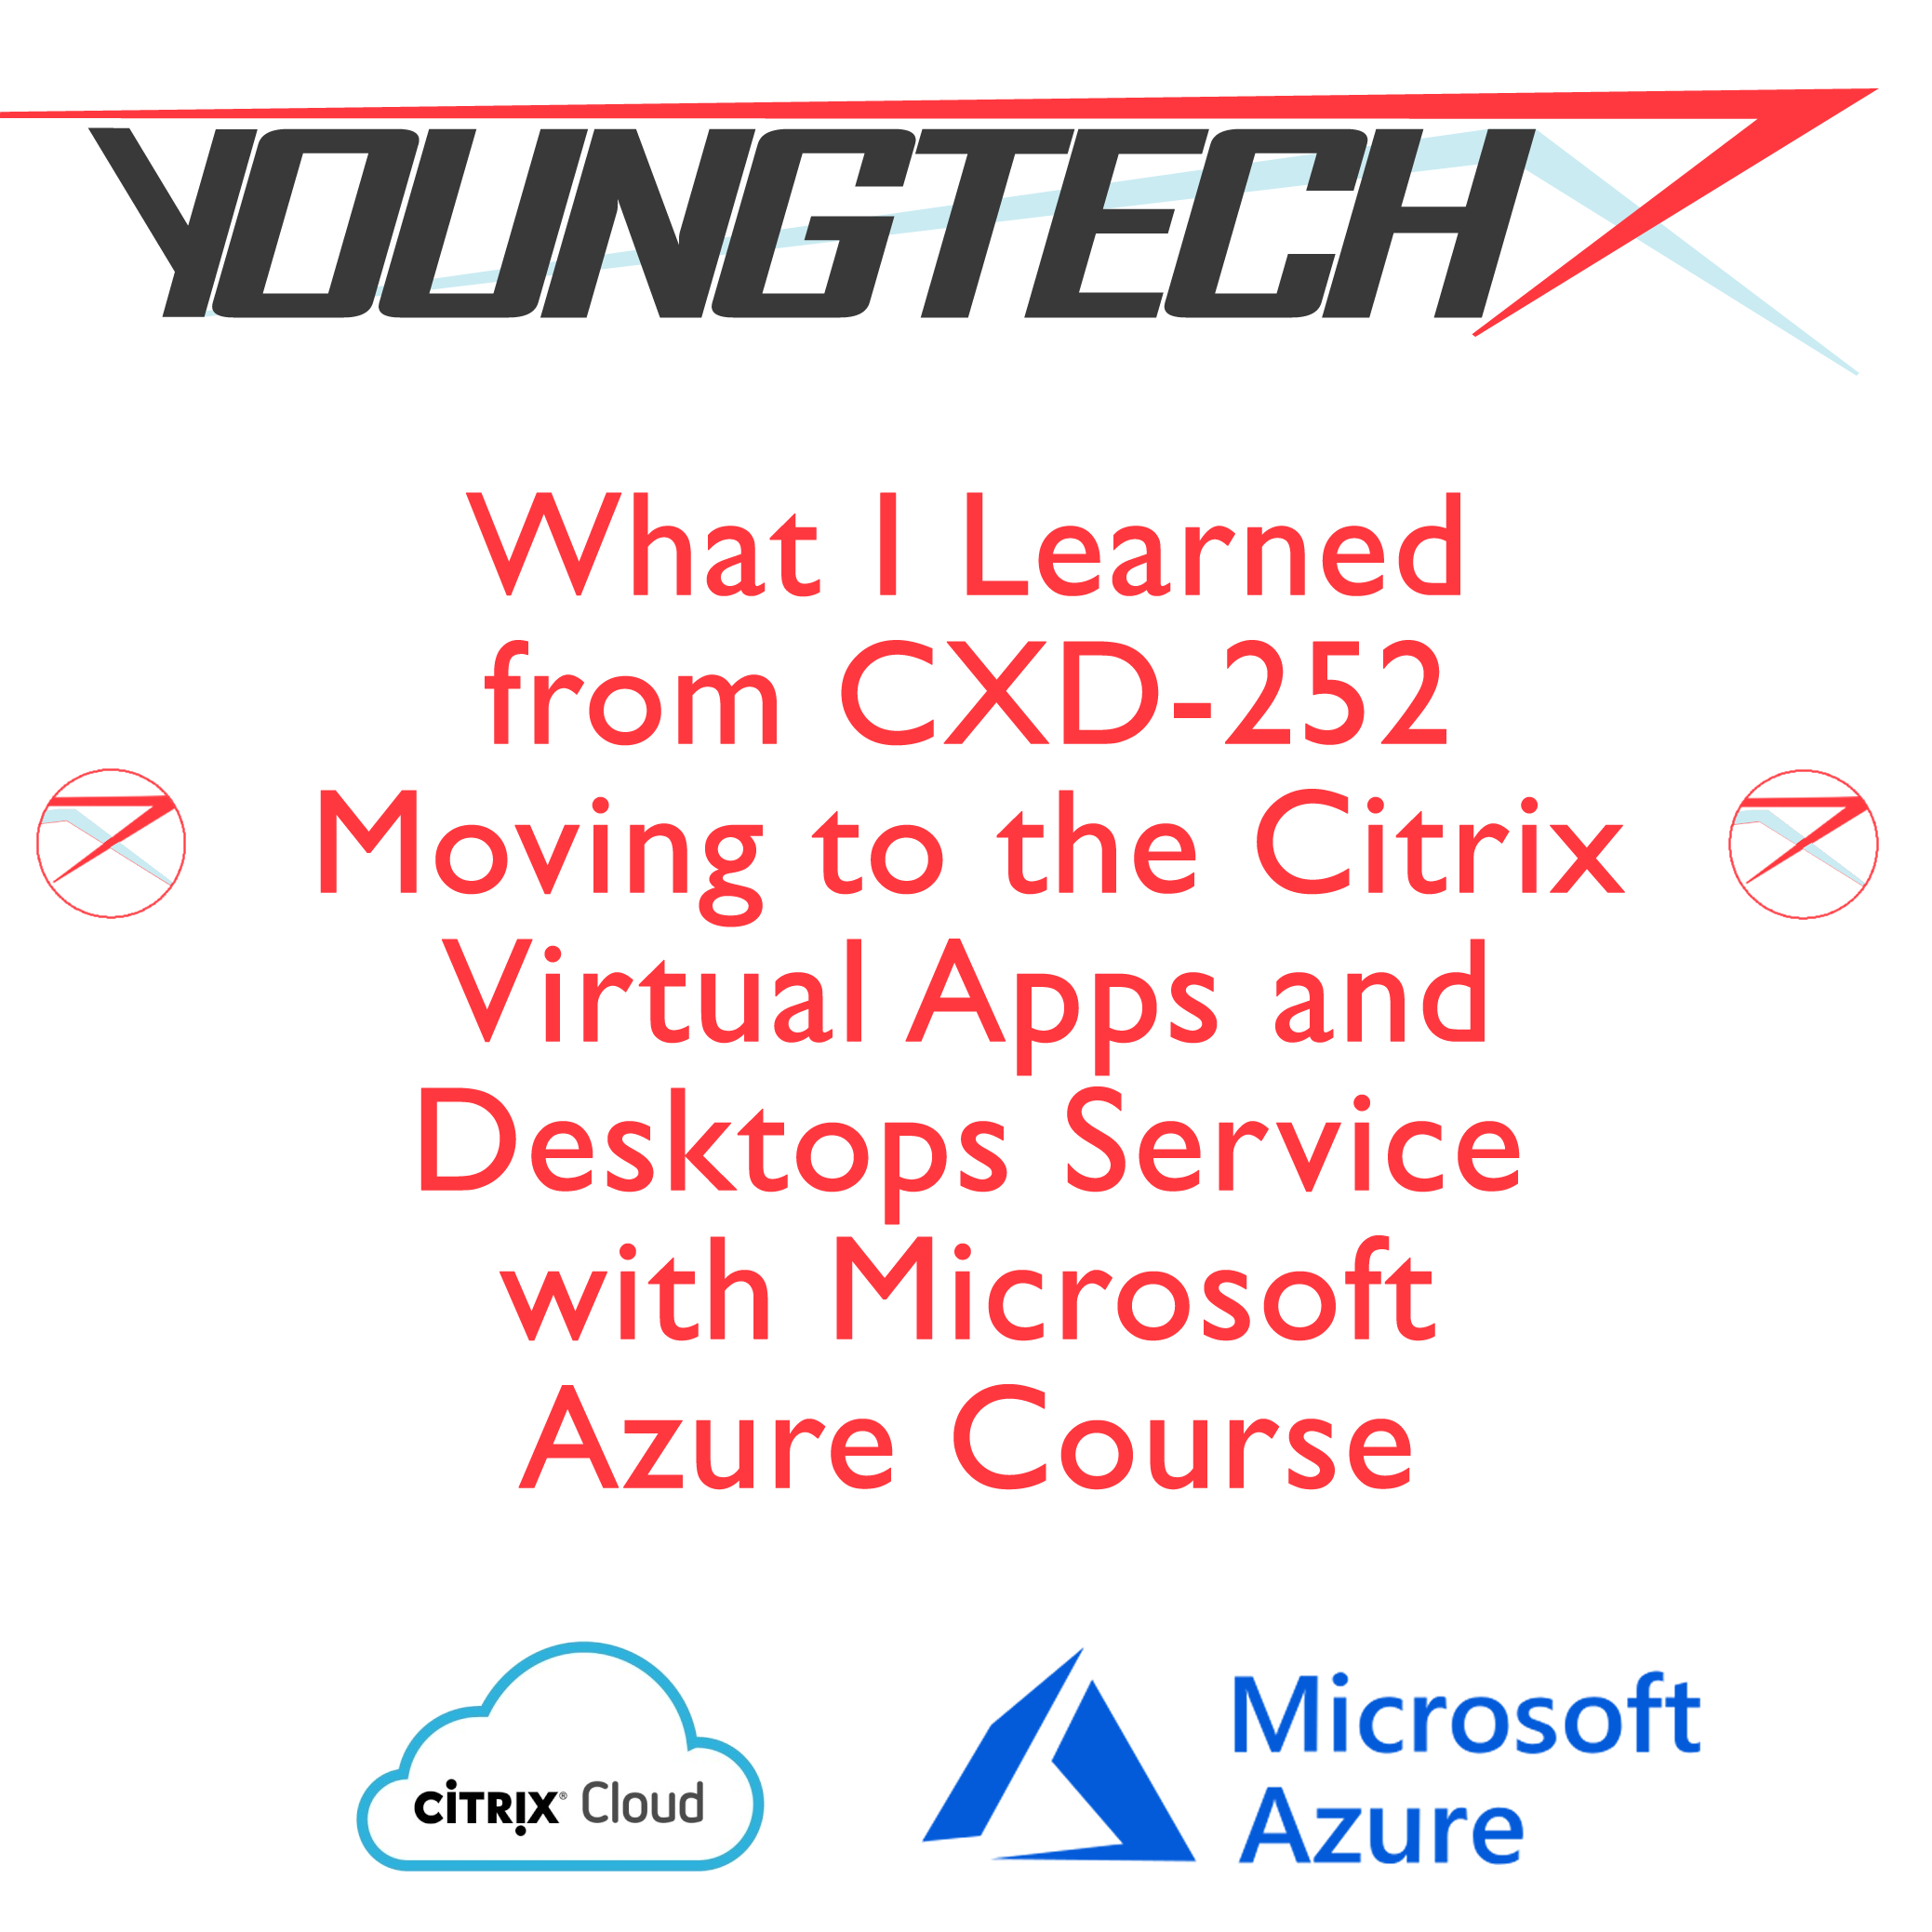 What I Learned from CXD-252 Moving to the Citrix Virtual Apps and